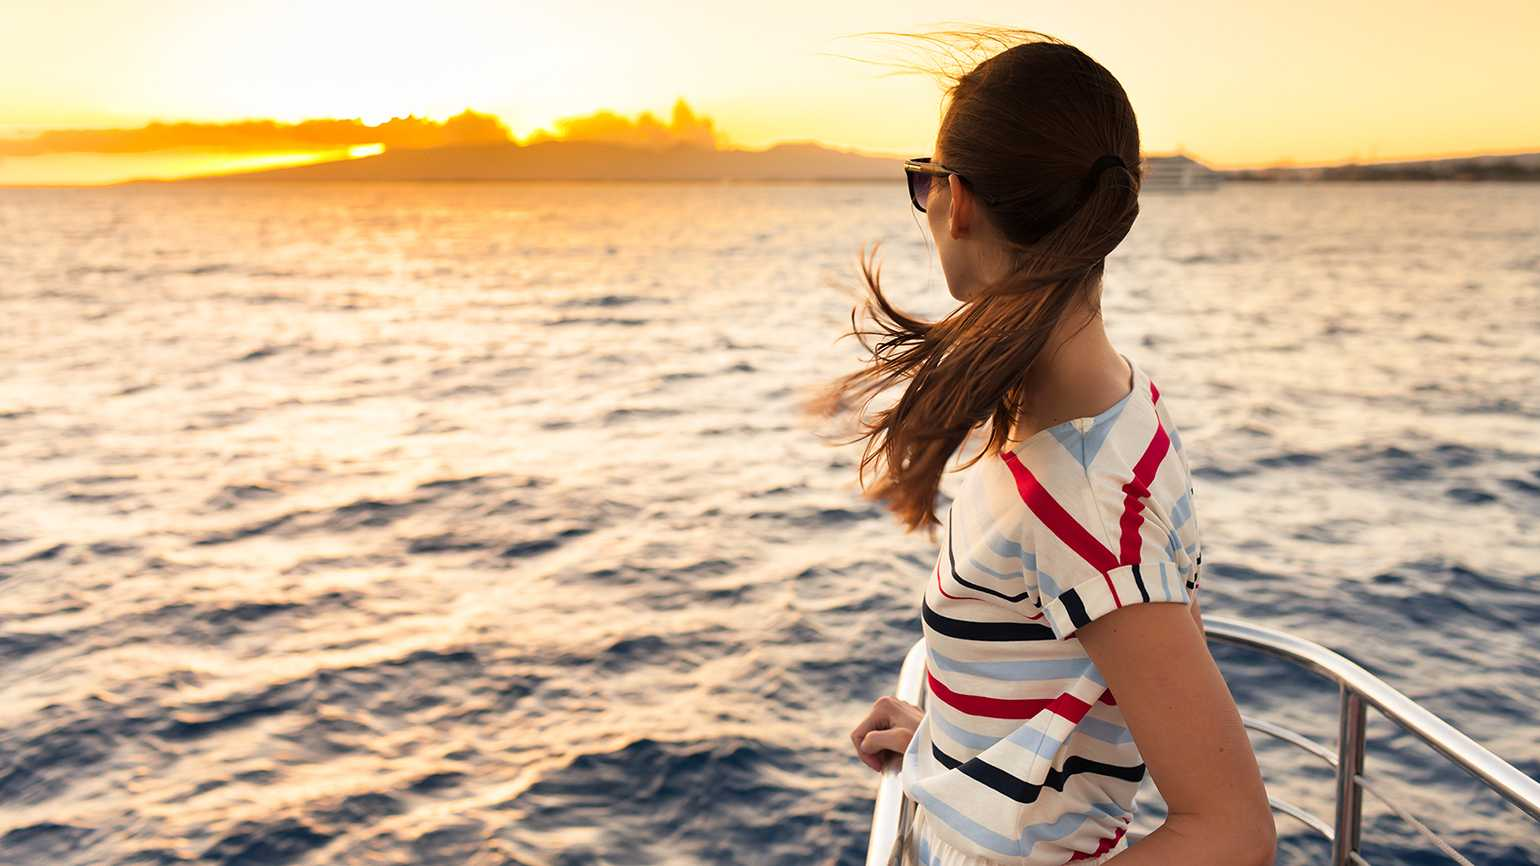 A woman rides a ferry at sunset